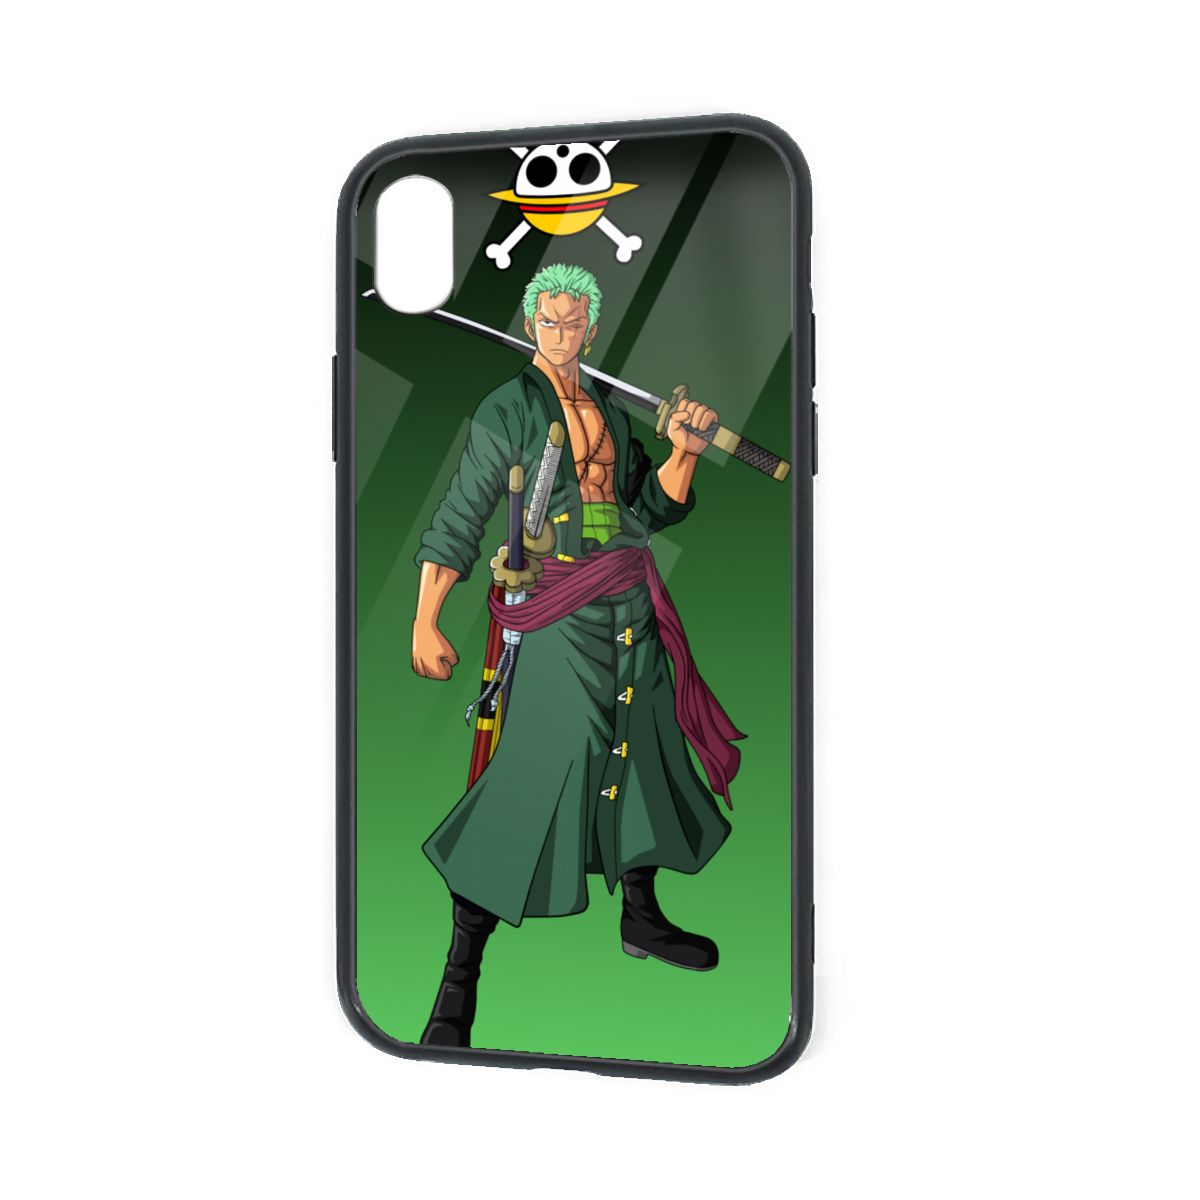 IPhone X XR XS 6 7 8 Plus Soft TPU Case Cover Roronoa Zoro